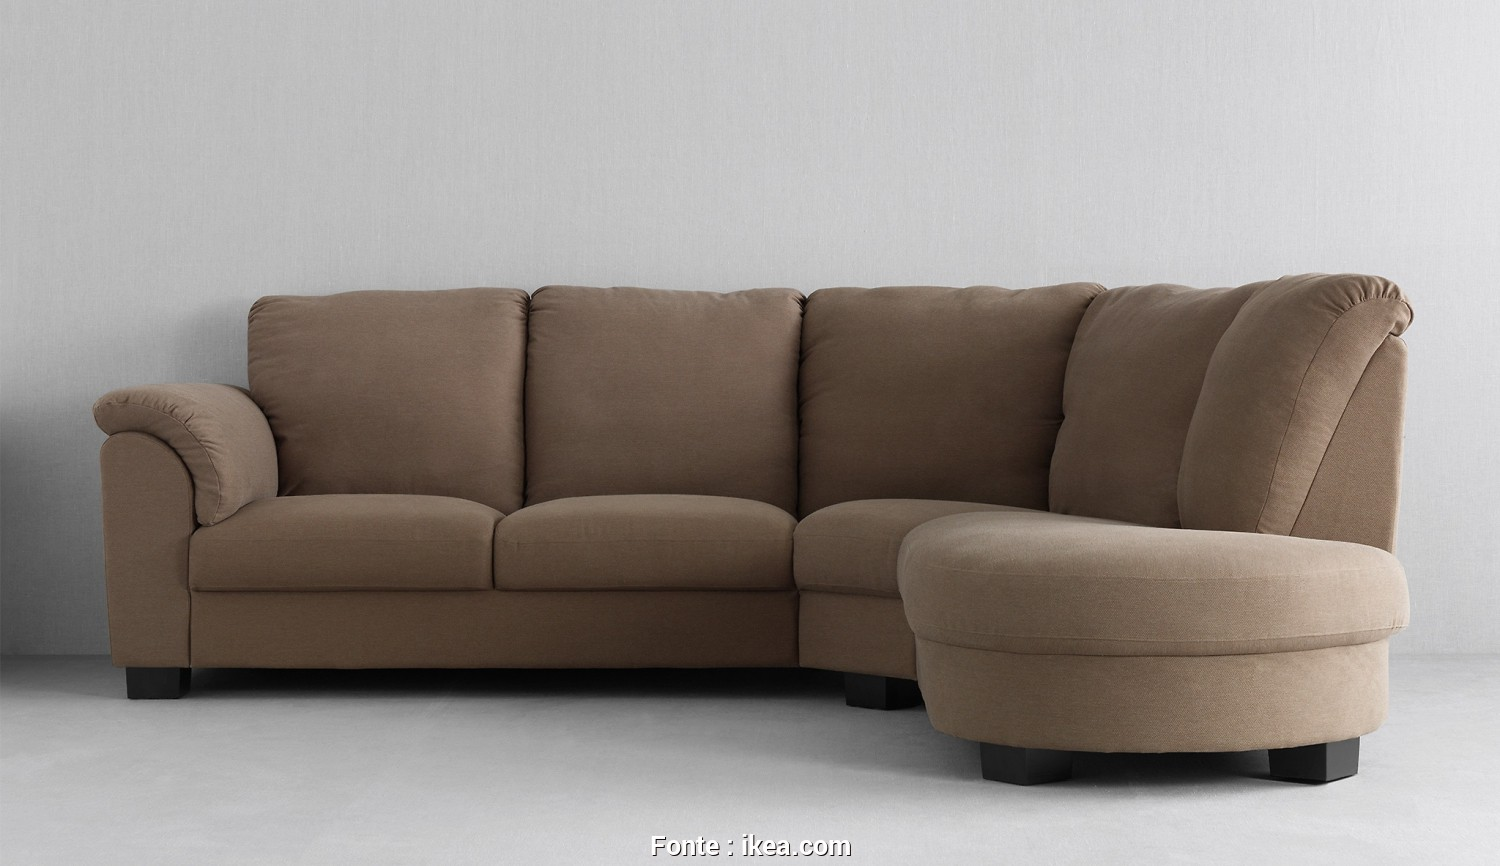 Ikea Divano Memory, Migliore Generous, Comfortable TIDAFORS Seating With Medium Brown Covers